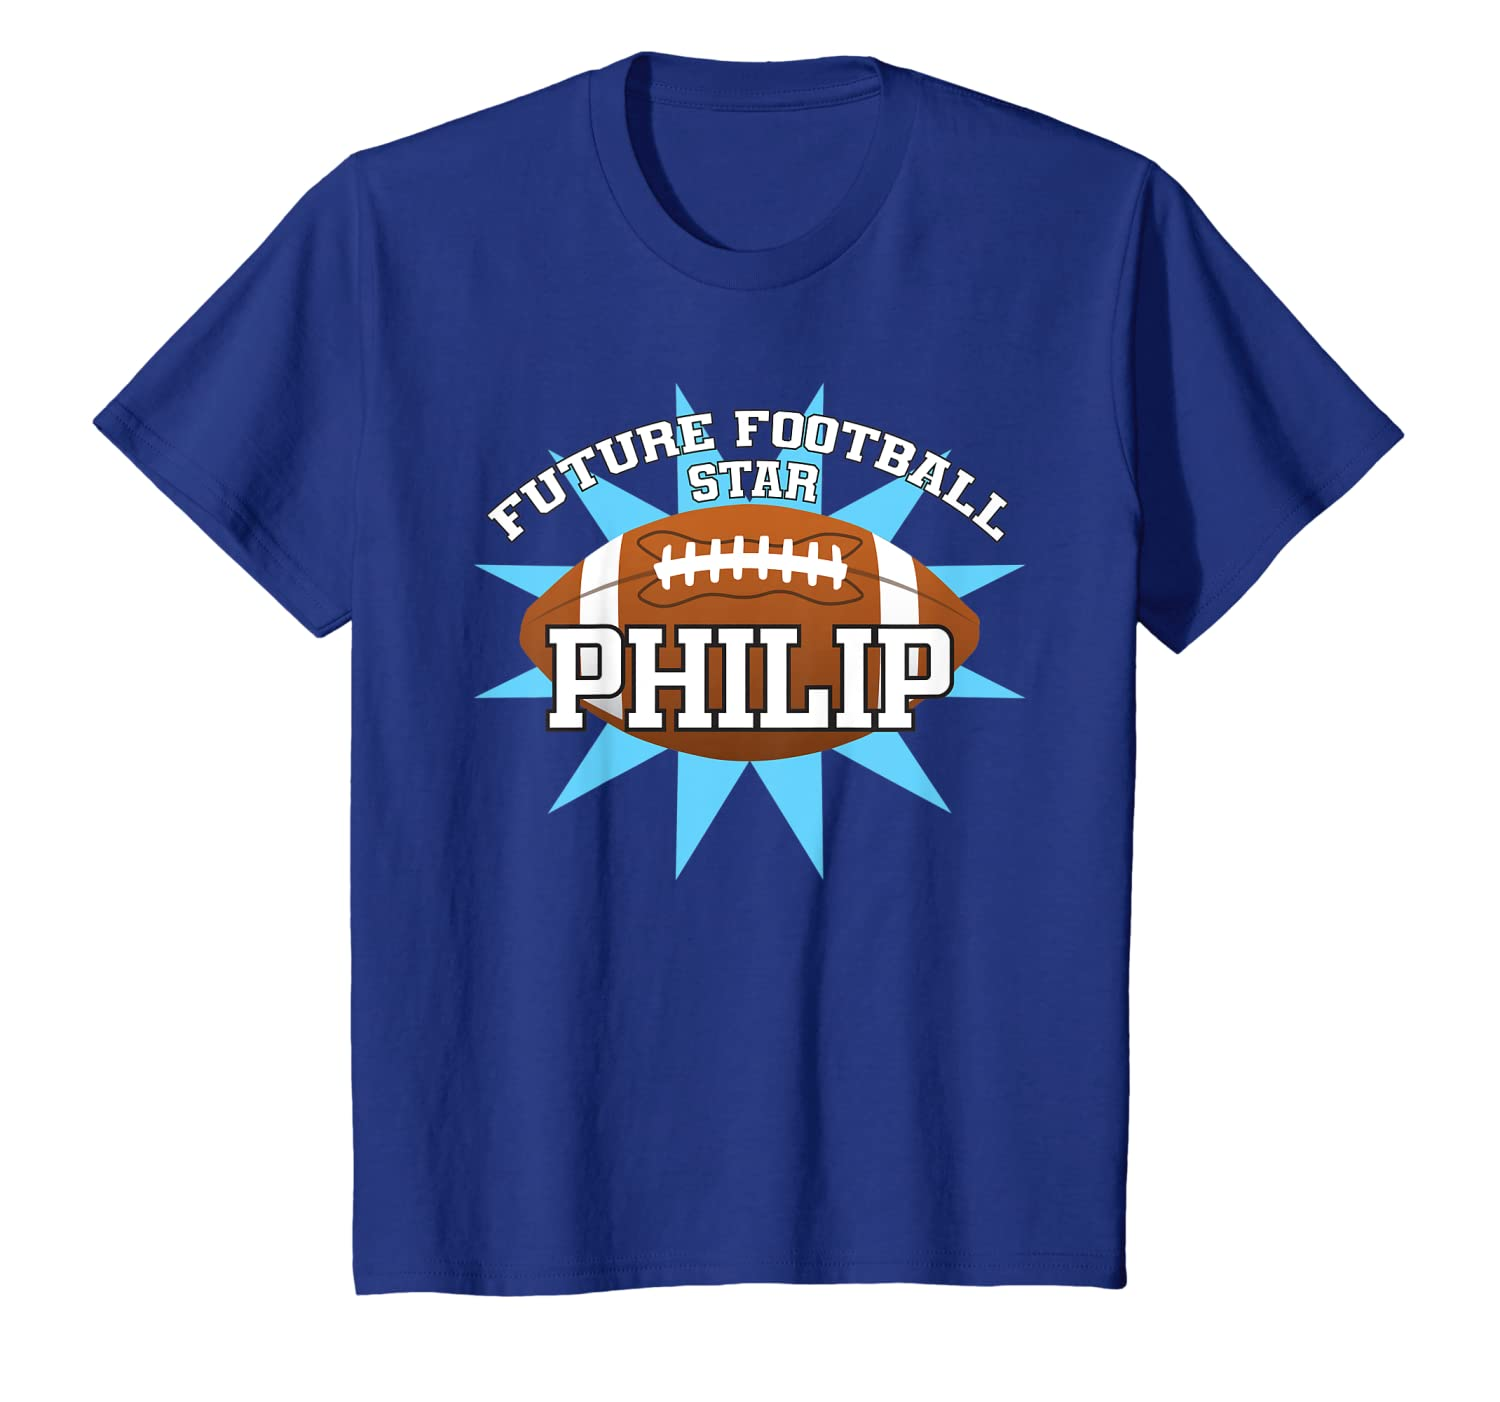 Kids Future Football Star Philip Birthday Boy Kids Name T-Shirt Unisex Tshirt